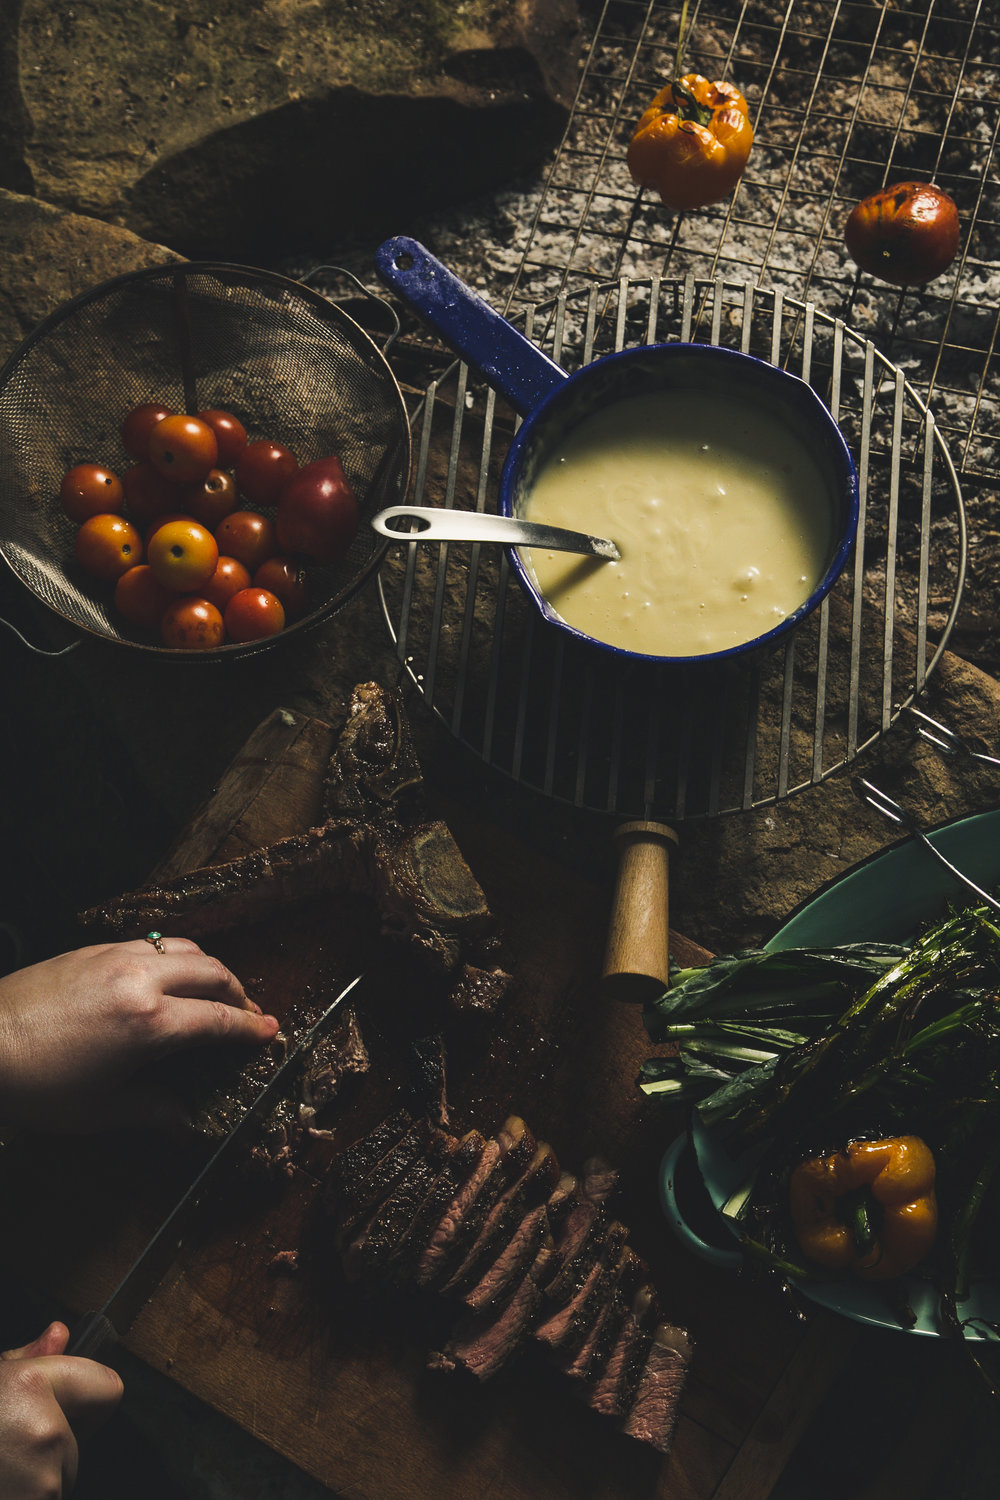 Campfire Fondue - pairing development, styling and photography for Emmi USA